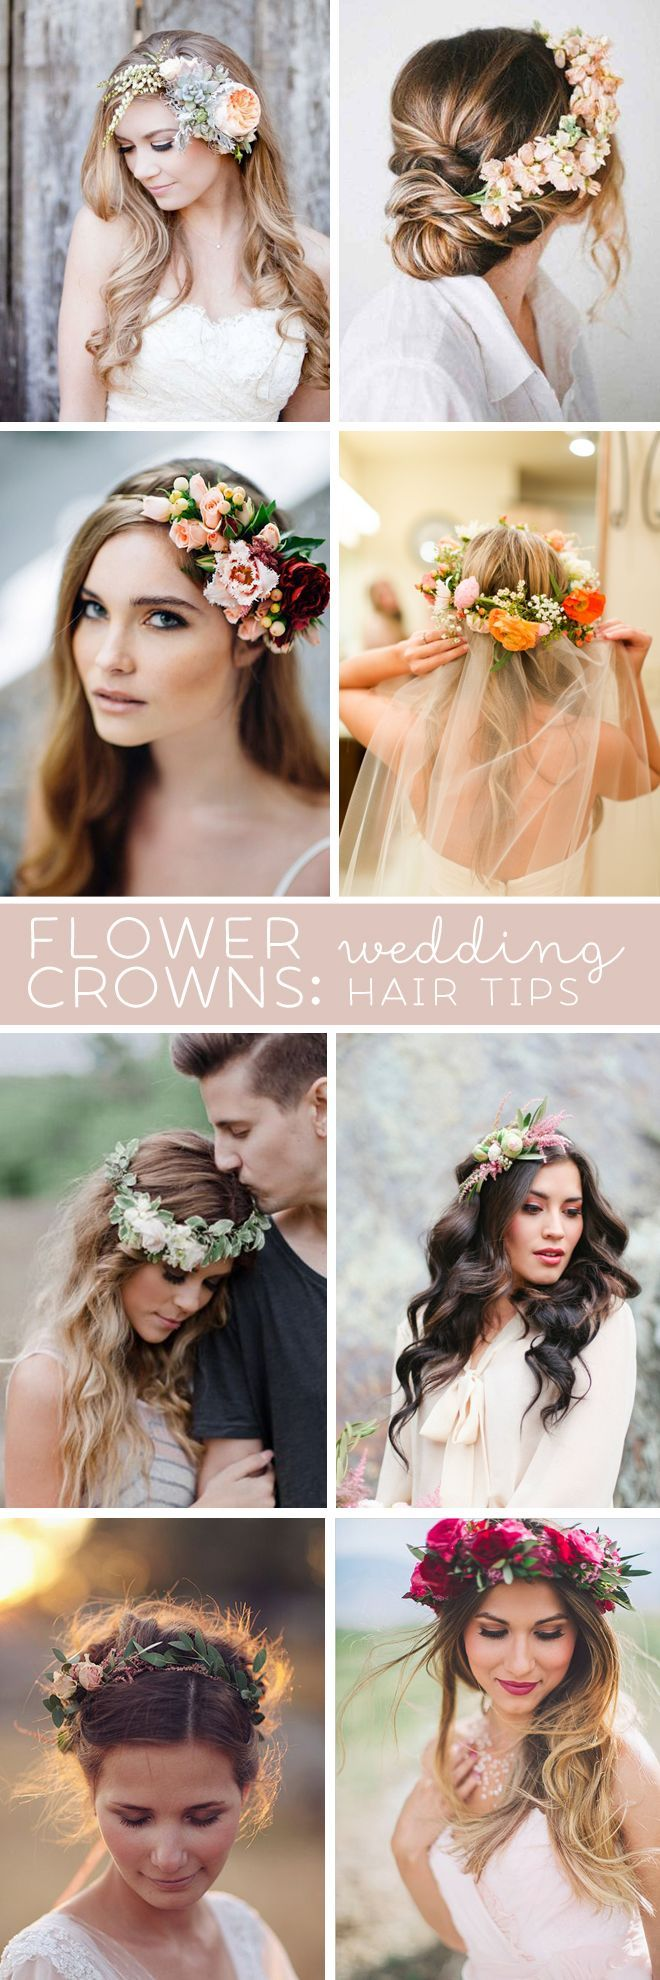 Awesome wedding hair tips for wearing flower crowns floral hair awesome wedding hair tips for wearing flower crowns izmirmasajfo